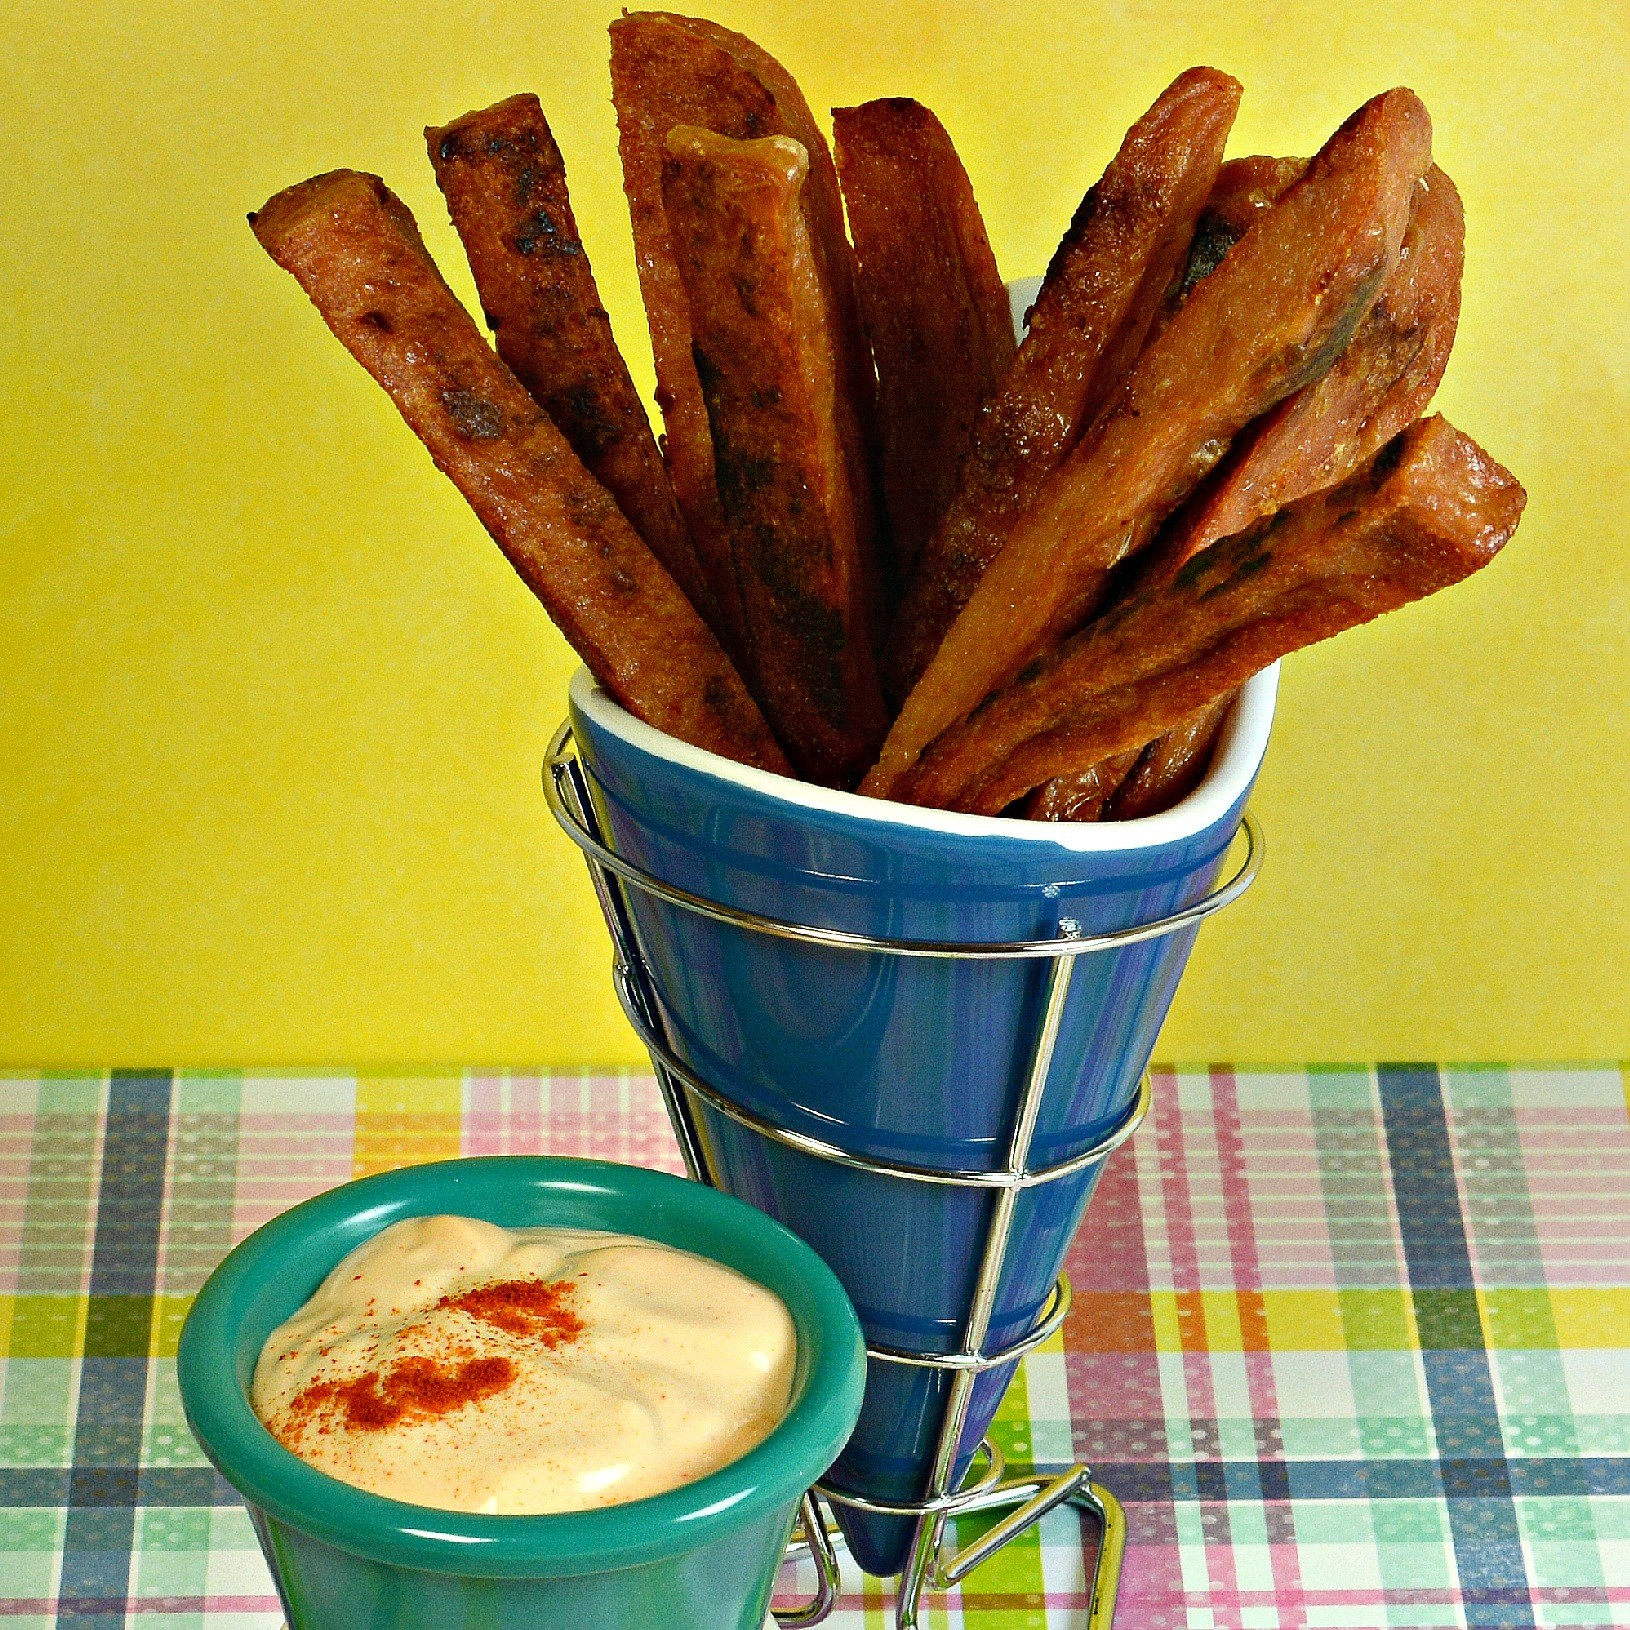 SPAM Fries with Spicy Garlic Sriracha Dipping Sauce